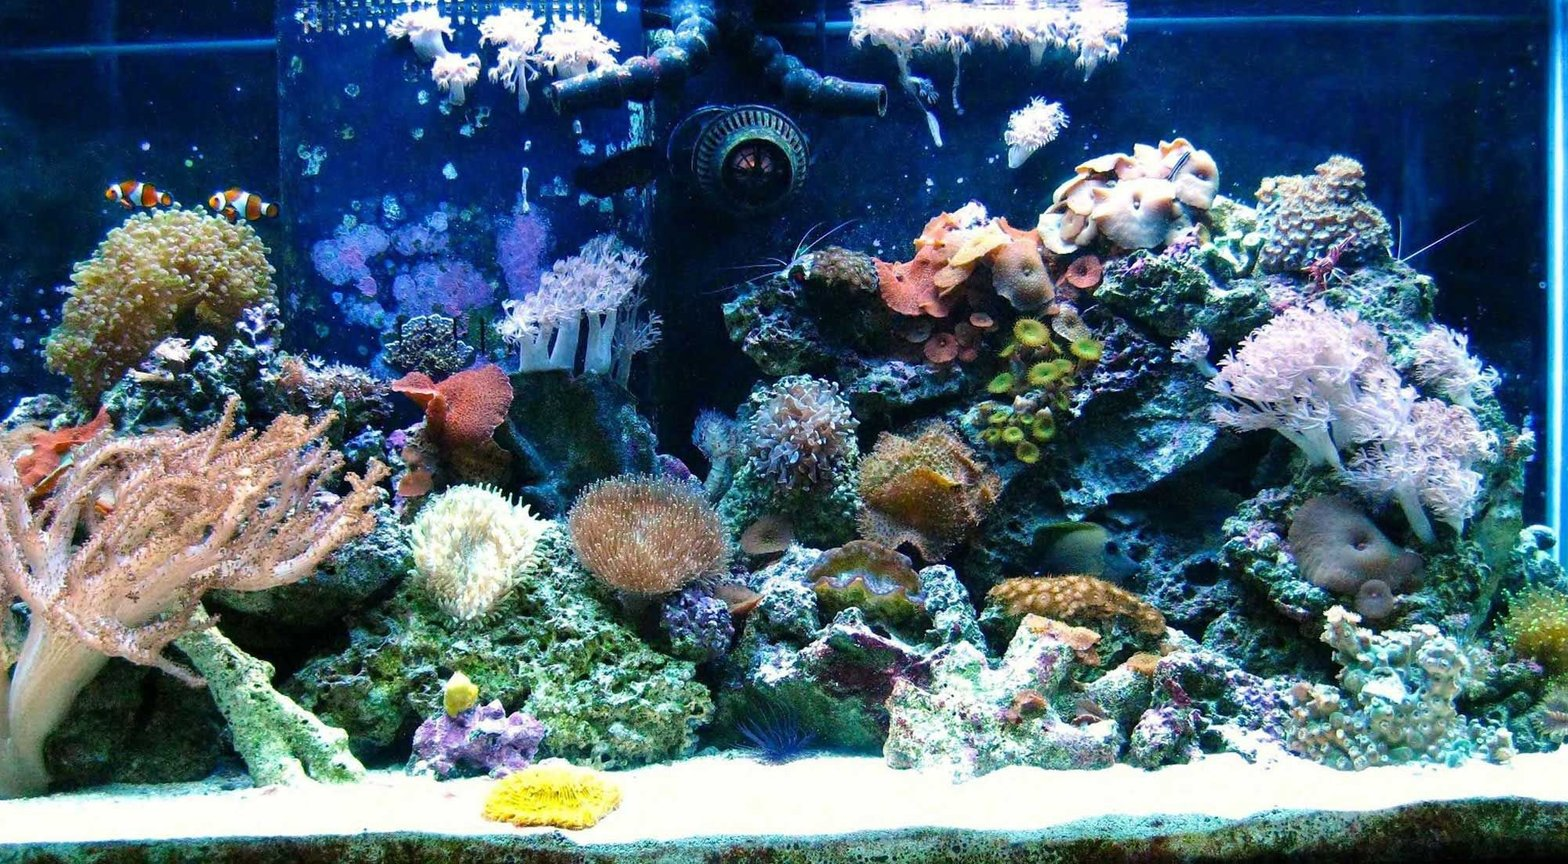 90 gallons reef tank (mostly live coral and fish) - 90 Gallons 2 False percula clowns, 2 Ferry wrasses, 1 Brown tang, 1 Angel beauty, 1 Neon gobby, 1 Banded coral, 1 Fire shrimp, 1 Peppermint shrimp 1 Cleaner shrimp, 1 Giant green brittle star Emerald crabs, turbo snails, sand snails Assortment of soft coral- -frog spawn, tube anenome, tree coral, button, zoanthus, pulsing xenias, green star polyps, grape coral, brain coral, Green bubble anenome, Clam, Mushrooms, Sponge, Feather dusters